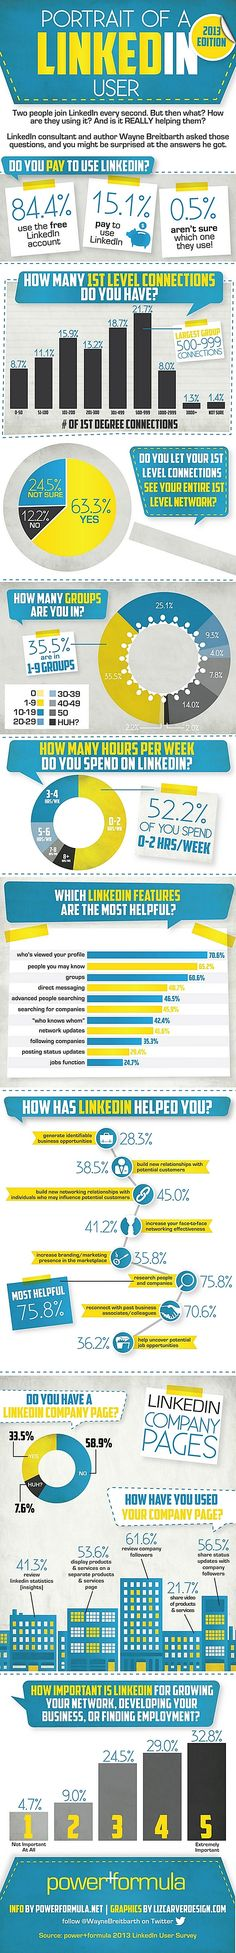 The-Portrait-Of-A-LinkedIn-User-–-2013-Infographic